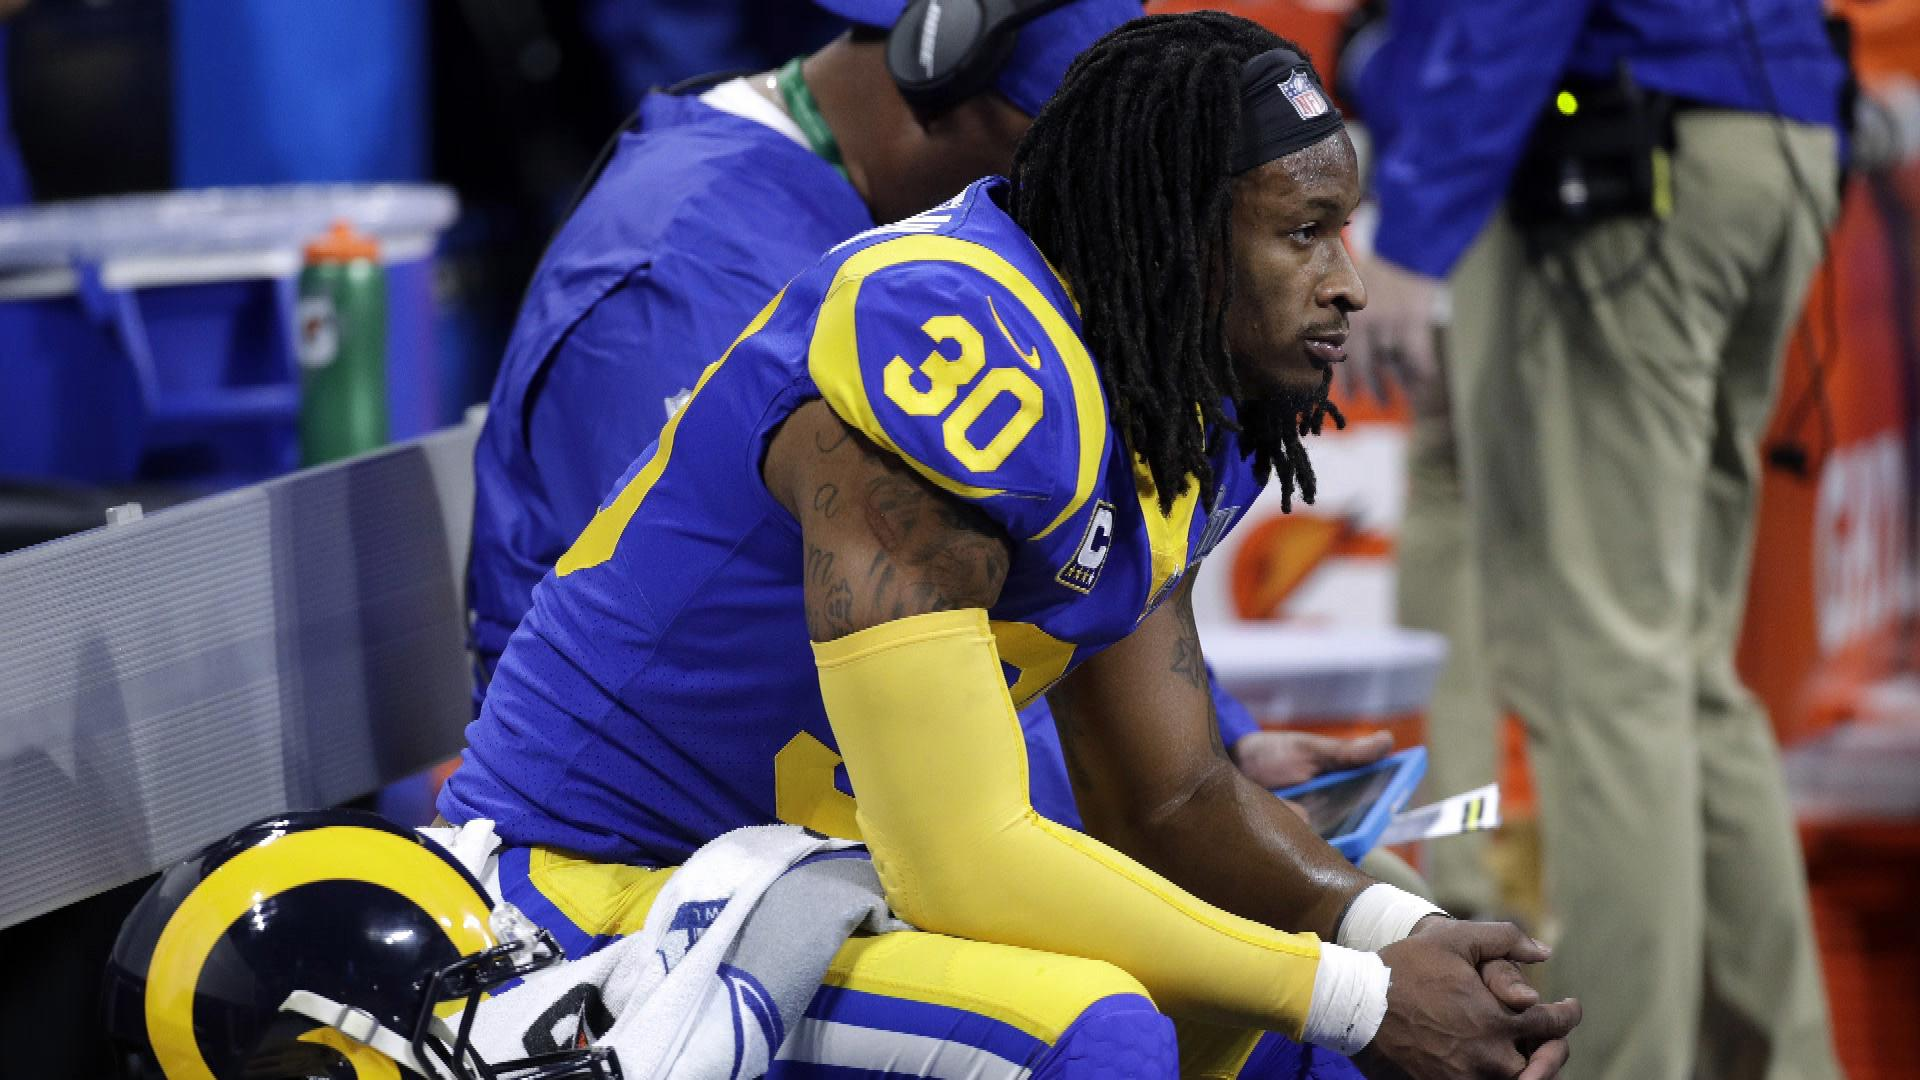 Todd Gurley's knee issues affected playing time in Rams vs. Steelers